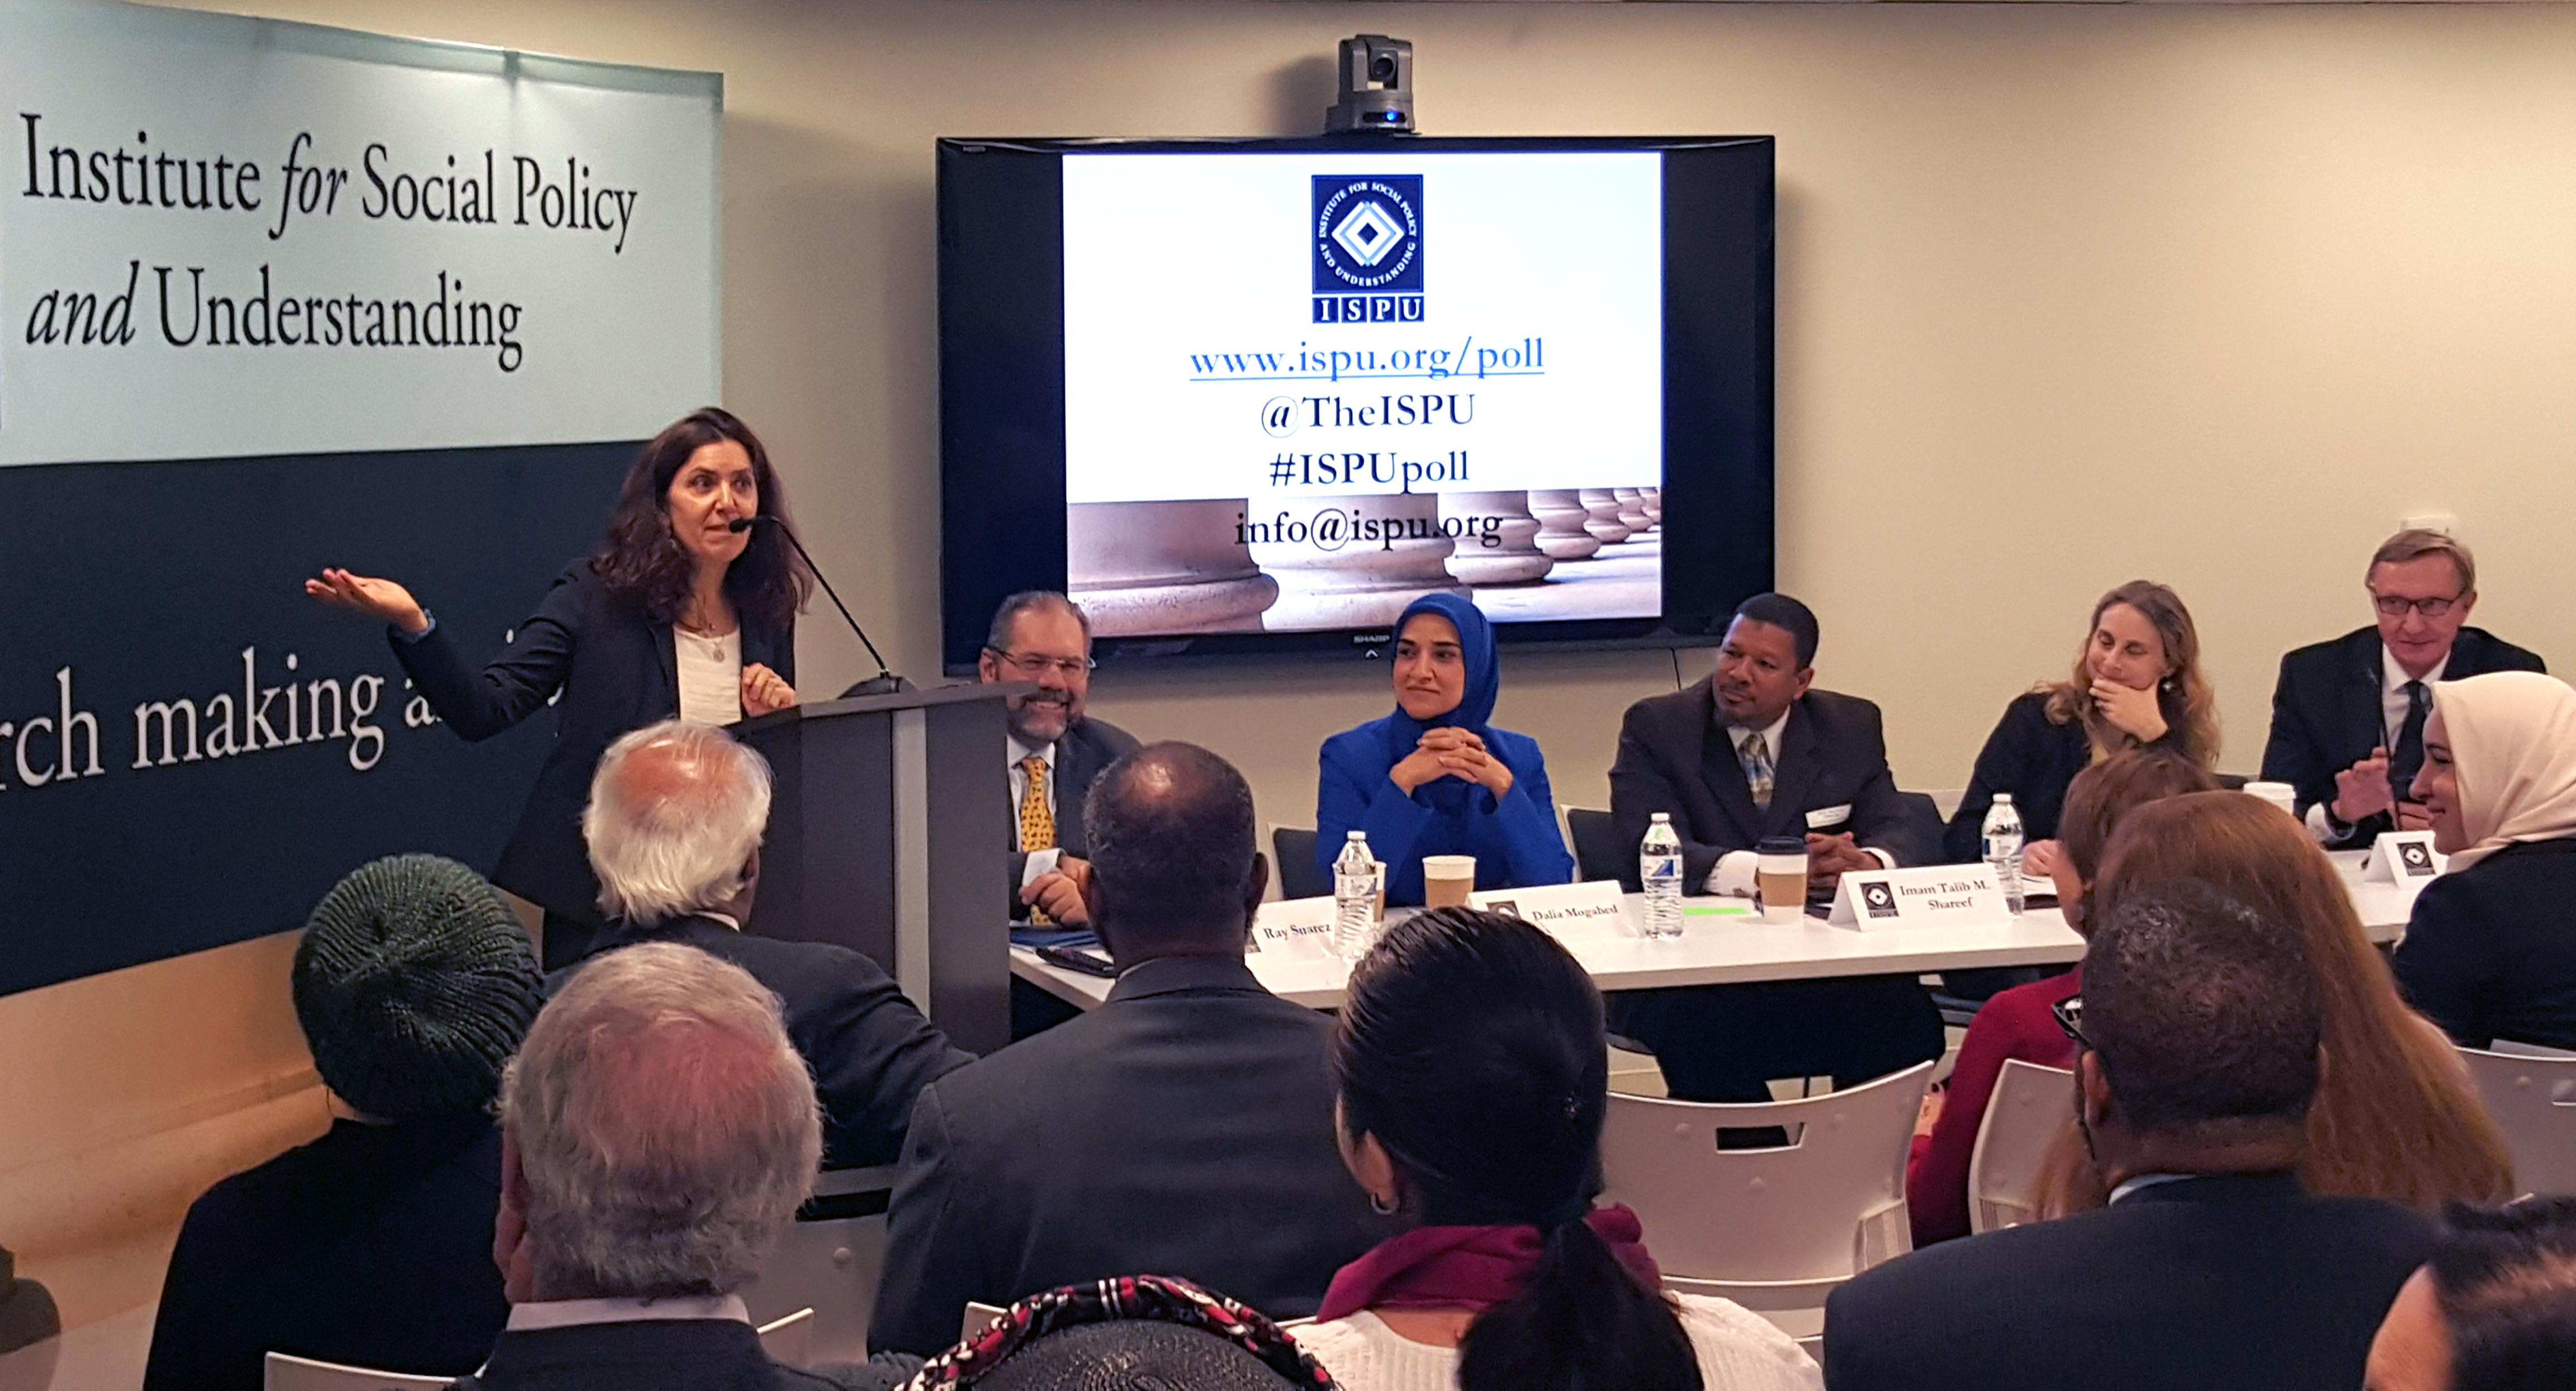 A group of presenters reveal the results of ISPU's first nationwide survey: American Muslim Poll 2016